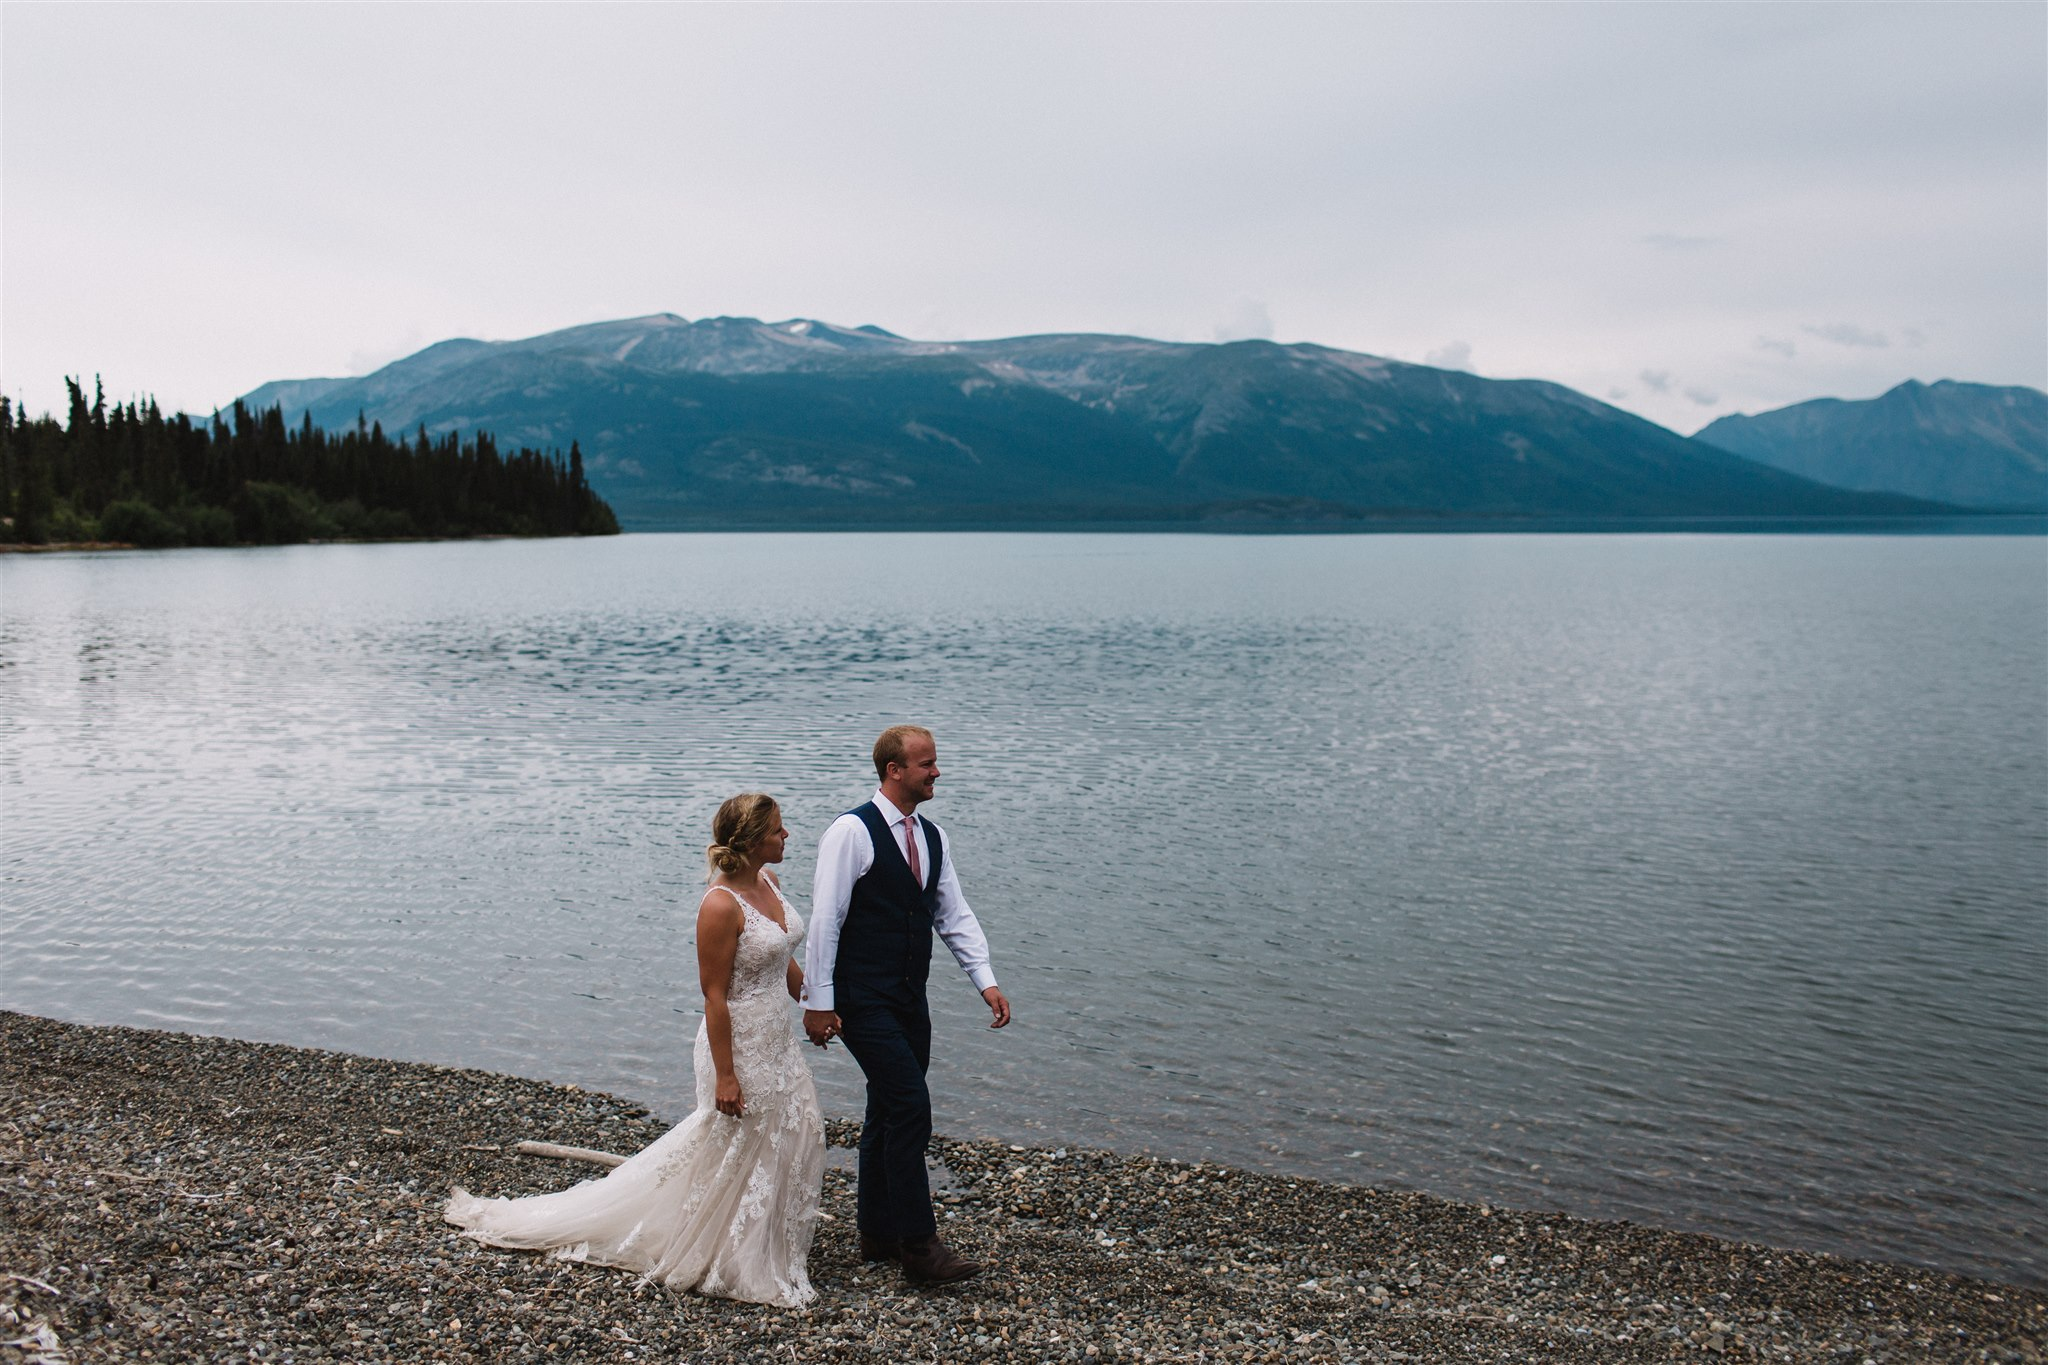 Lake views with bride and groom